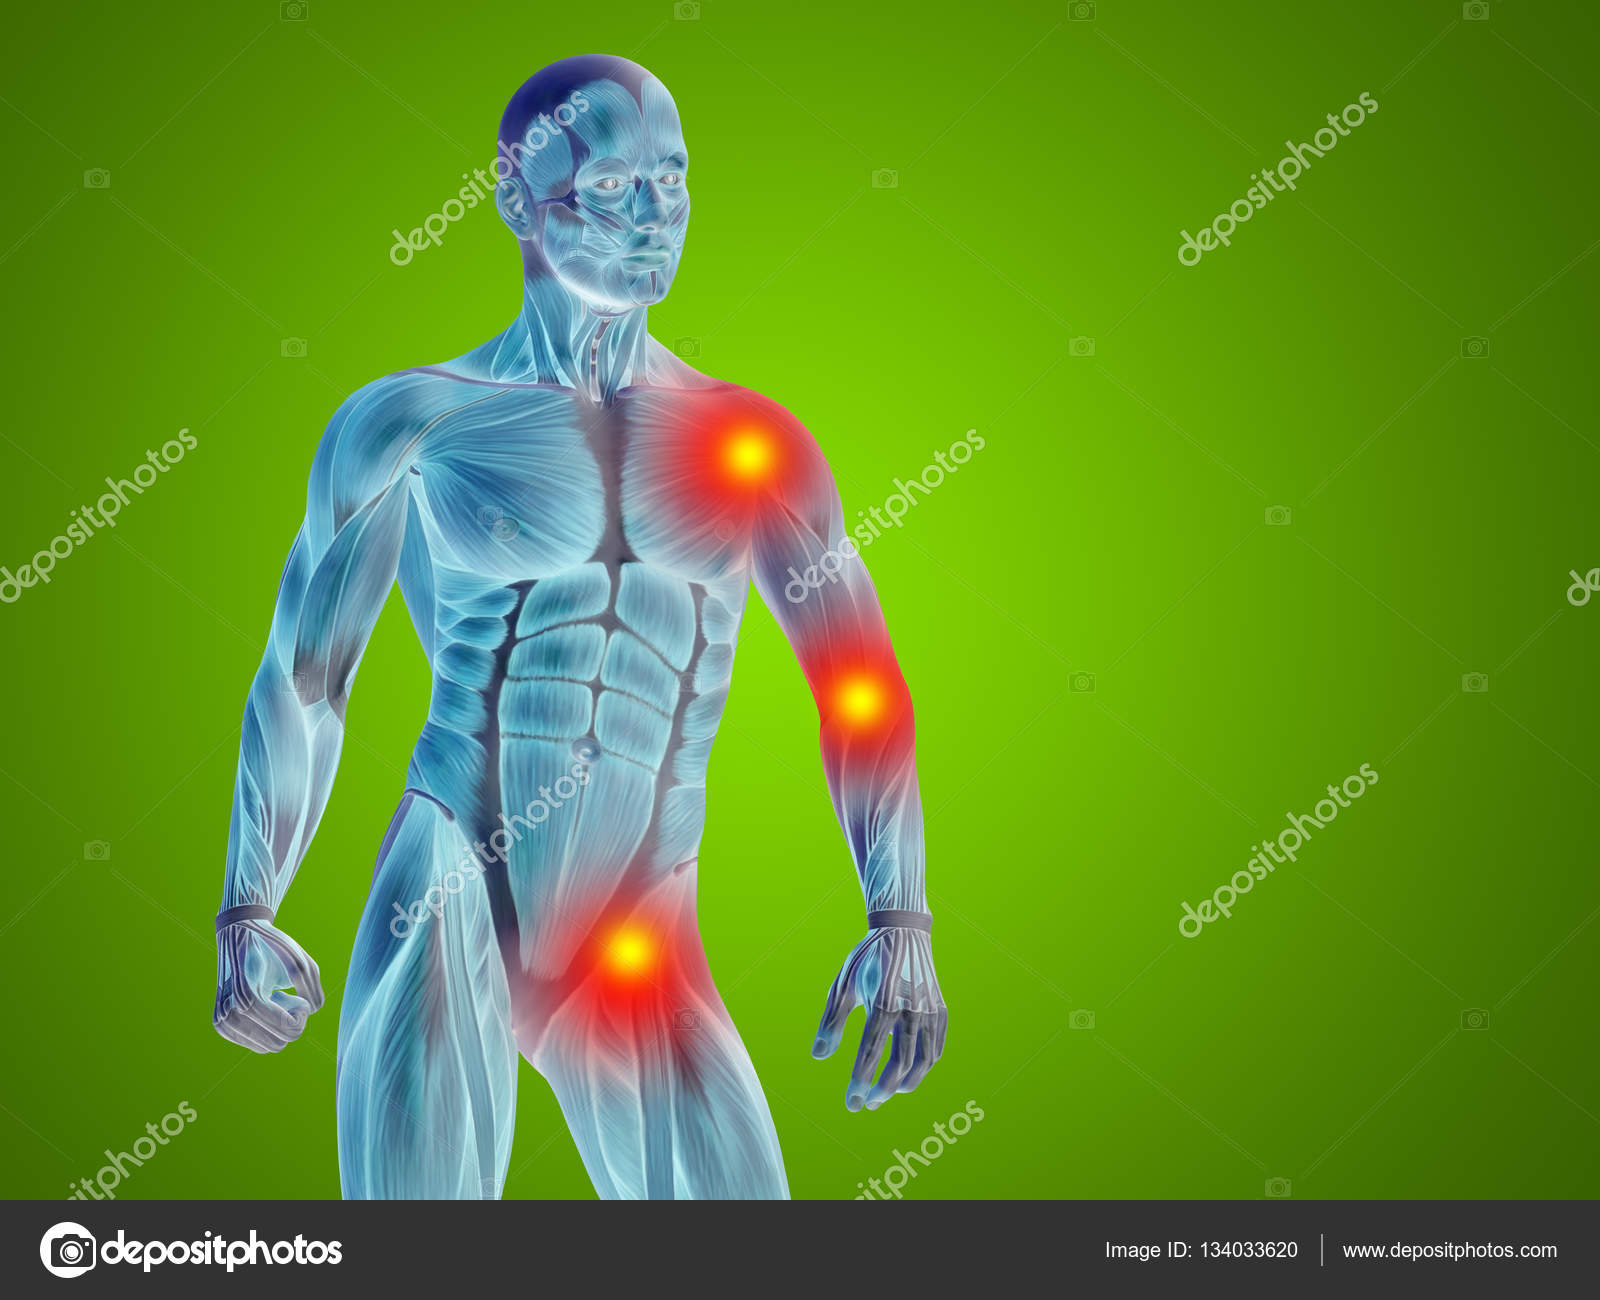 Human Anatomy Upper Body Stock Photo Design36 134033620